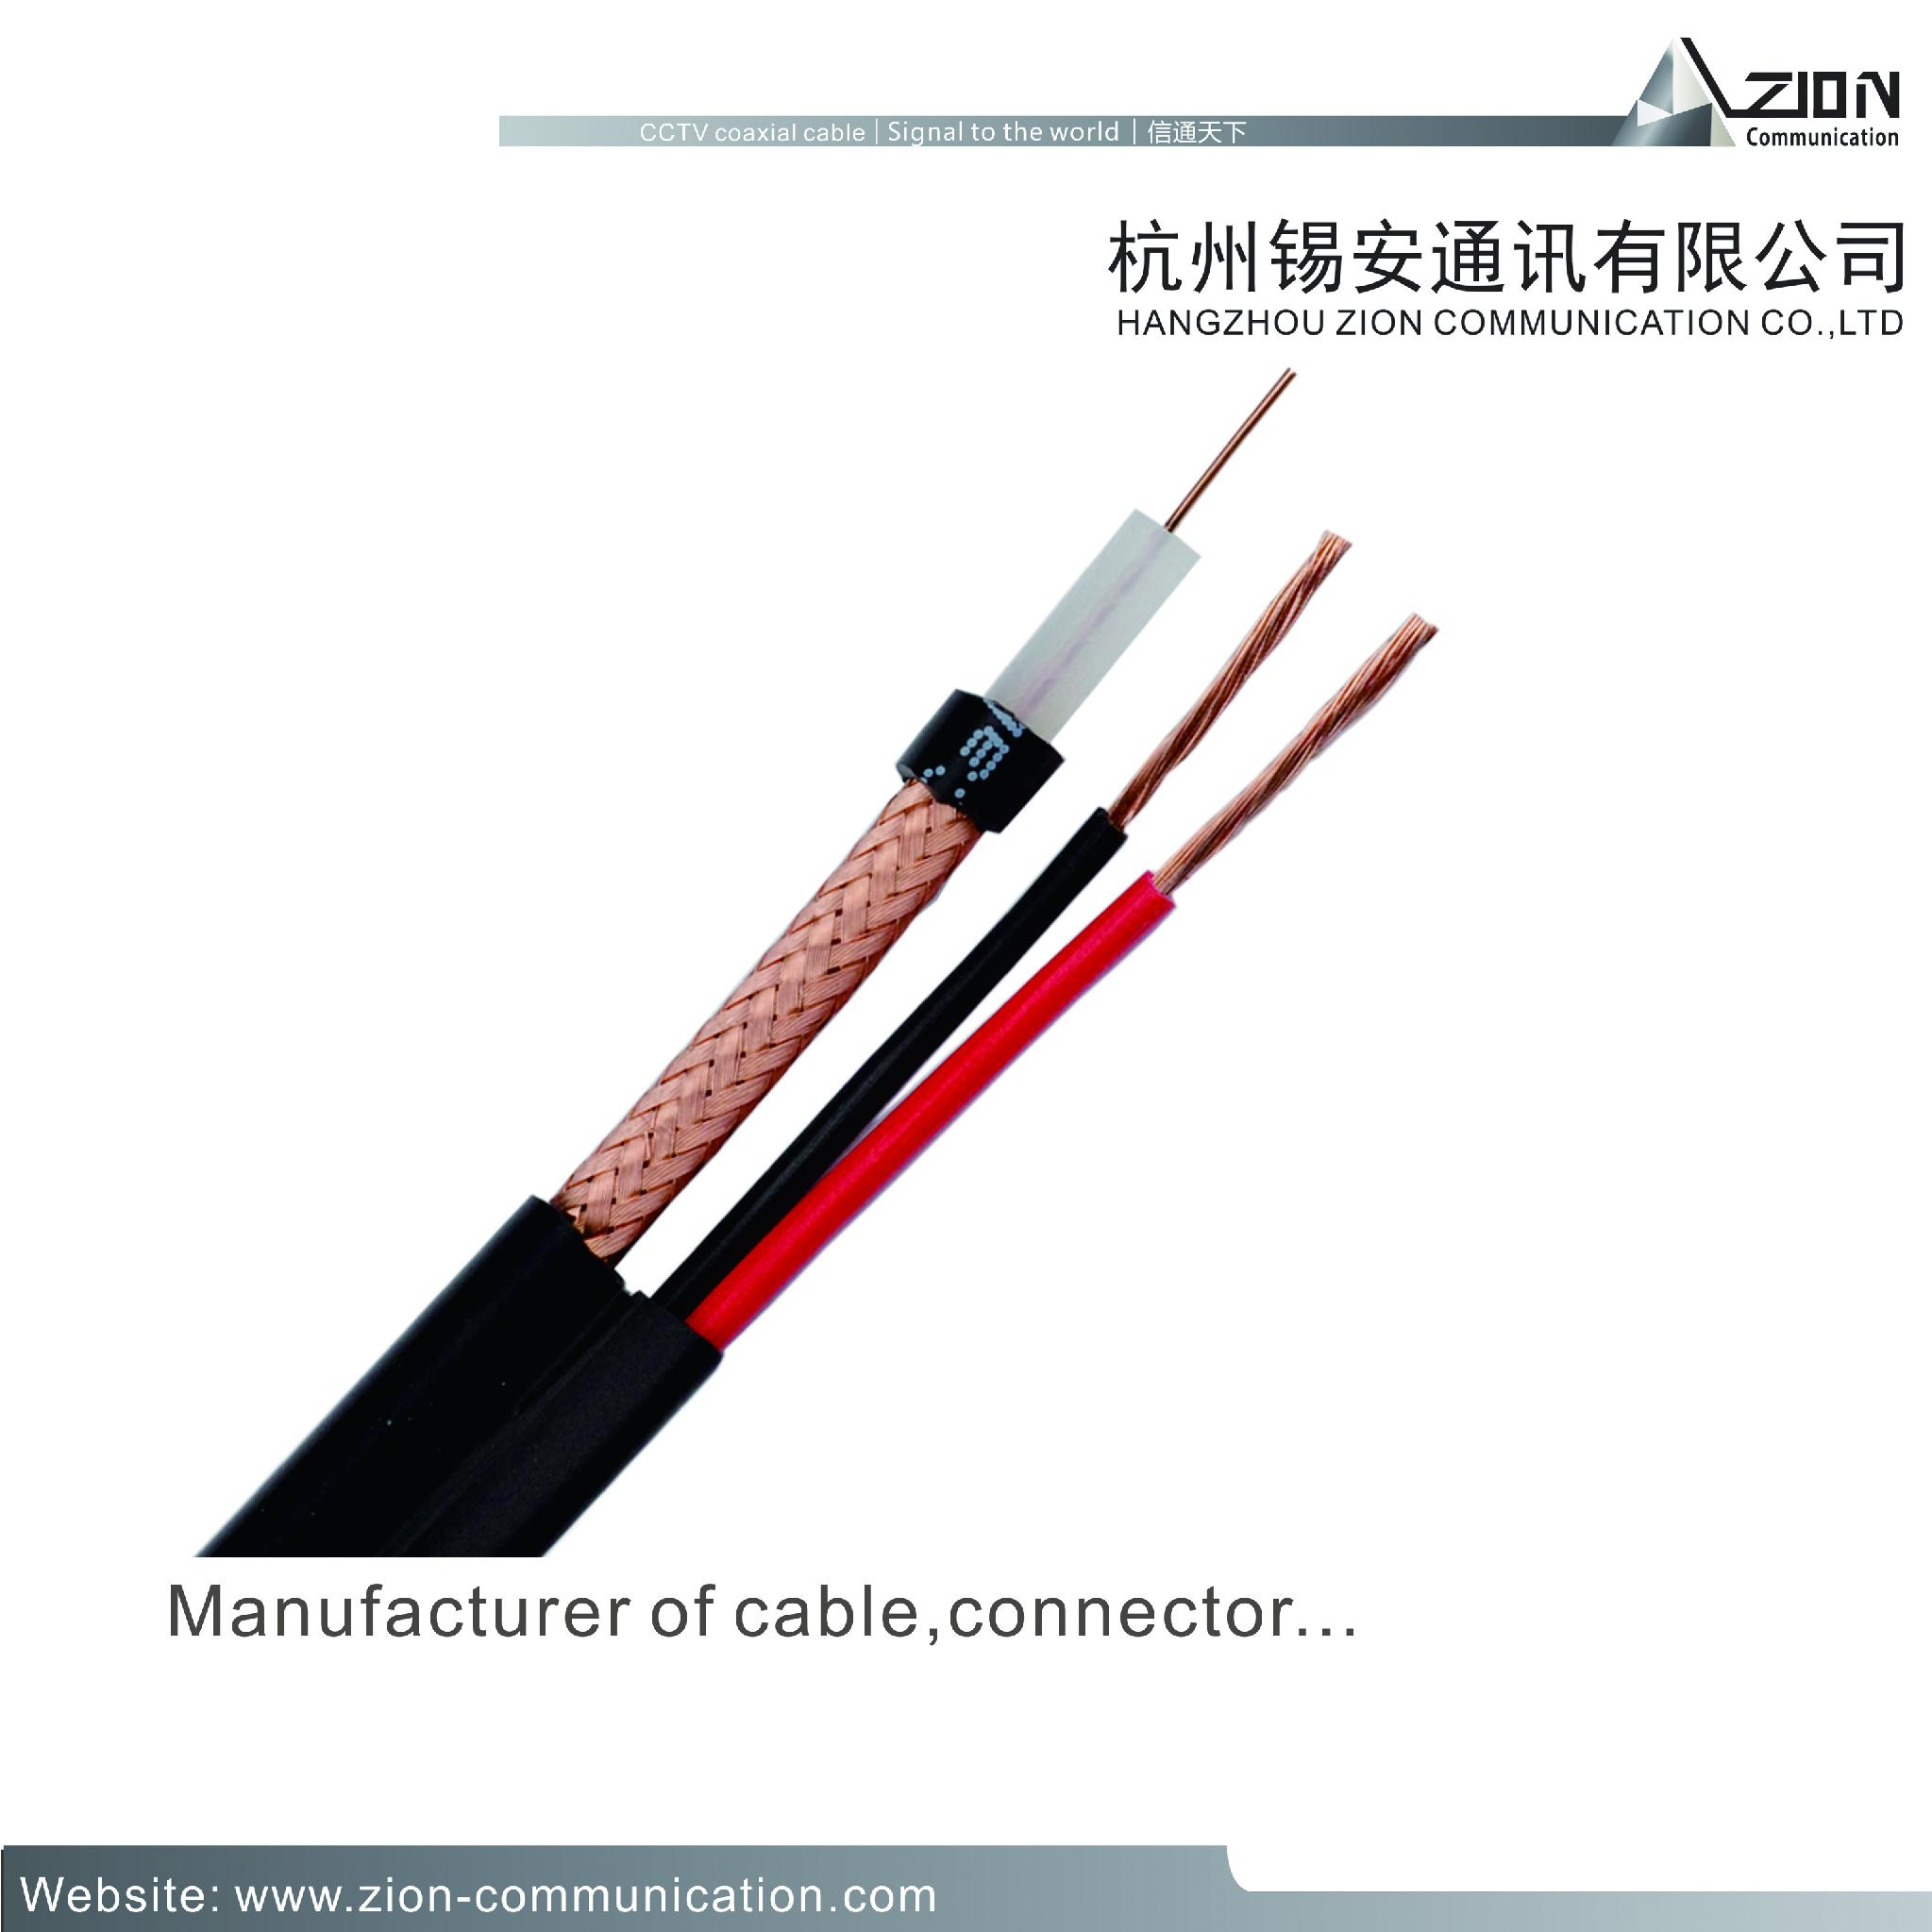 high quality RG6/U 18AWG / 2C CCTV Coaxial Cable 95%CCTV POWER CABLE for CAMERA 2